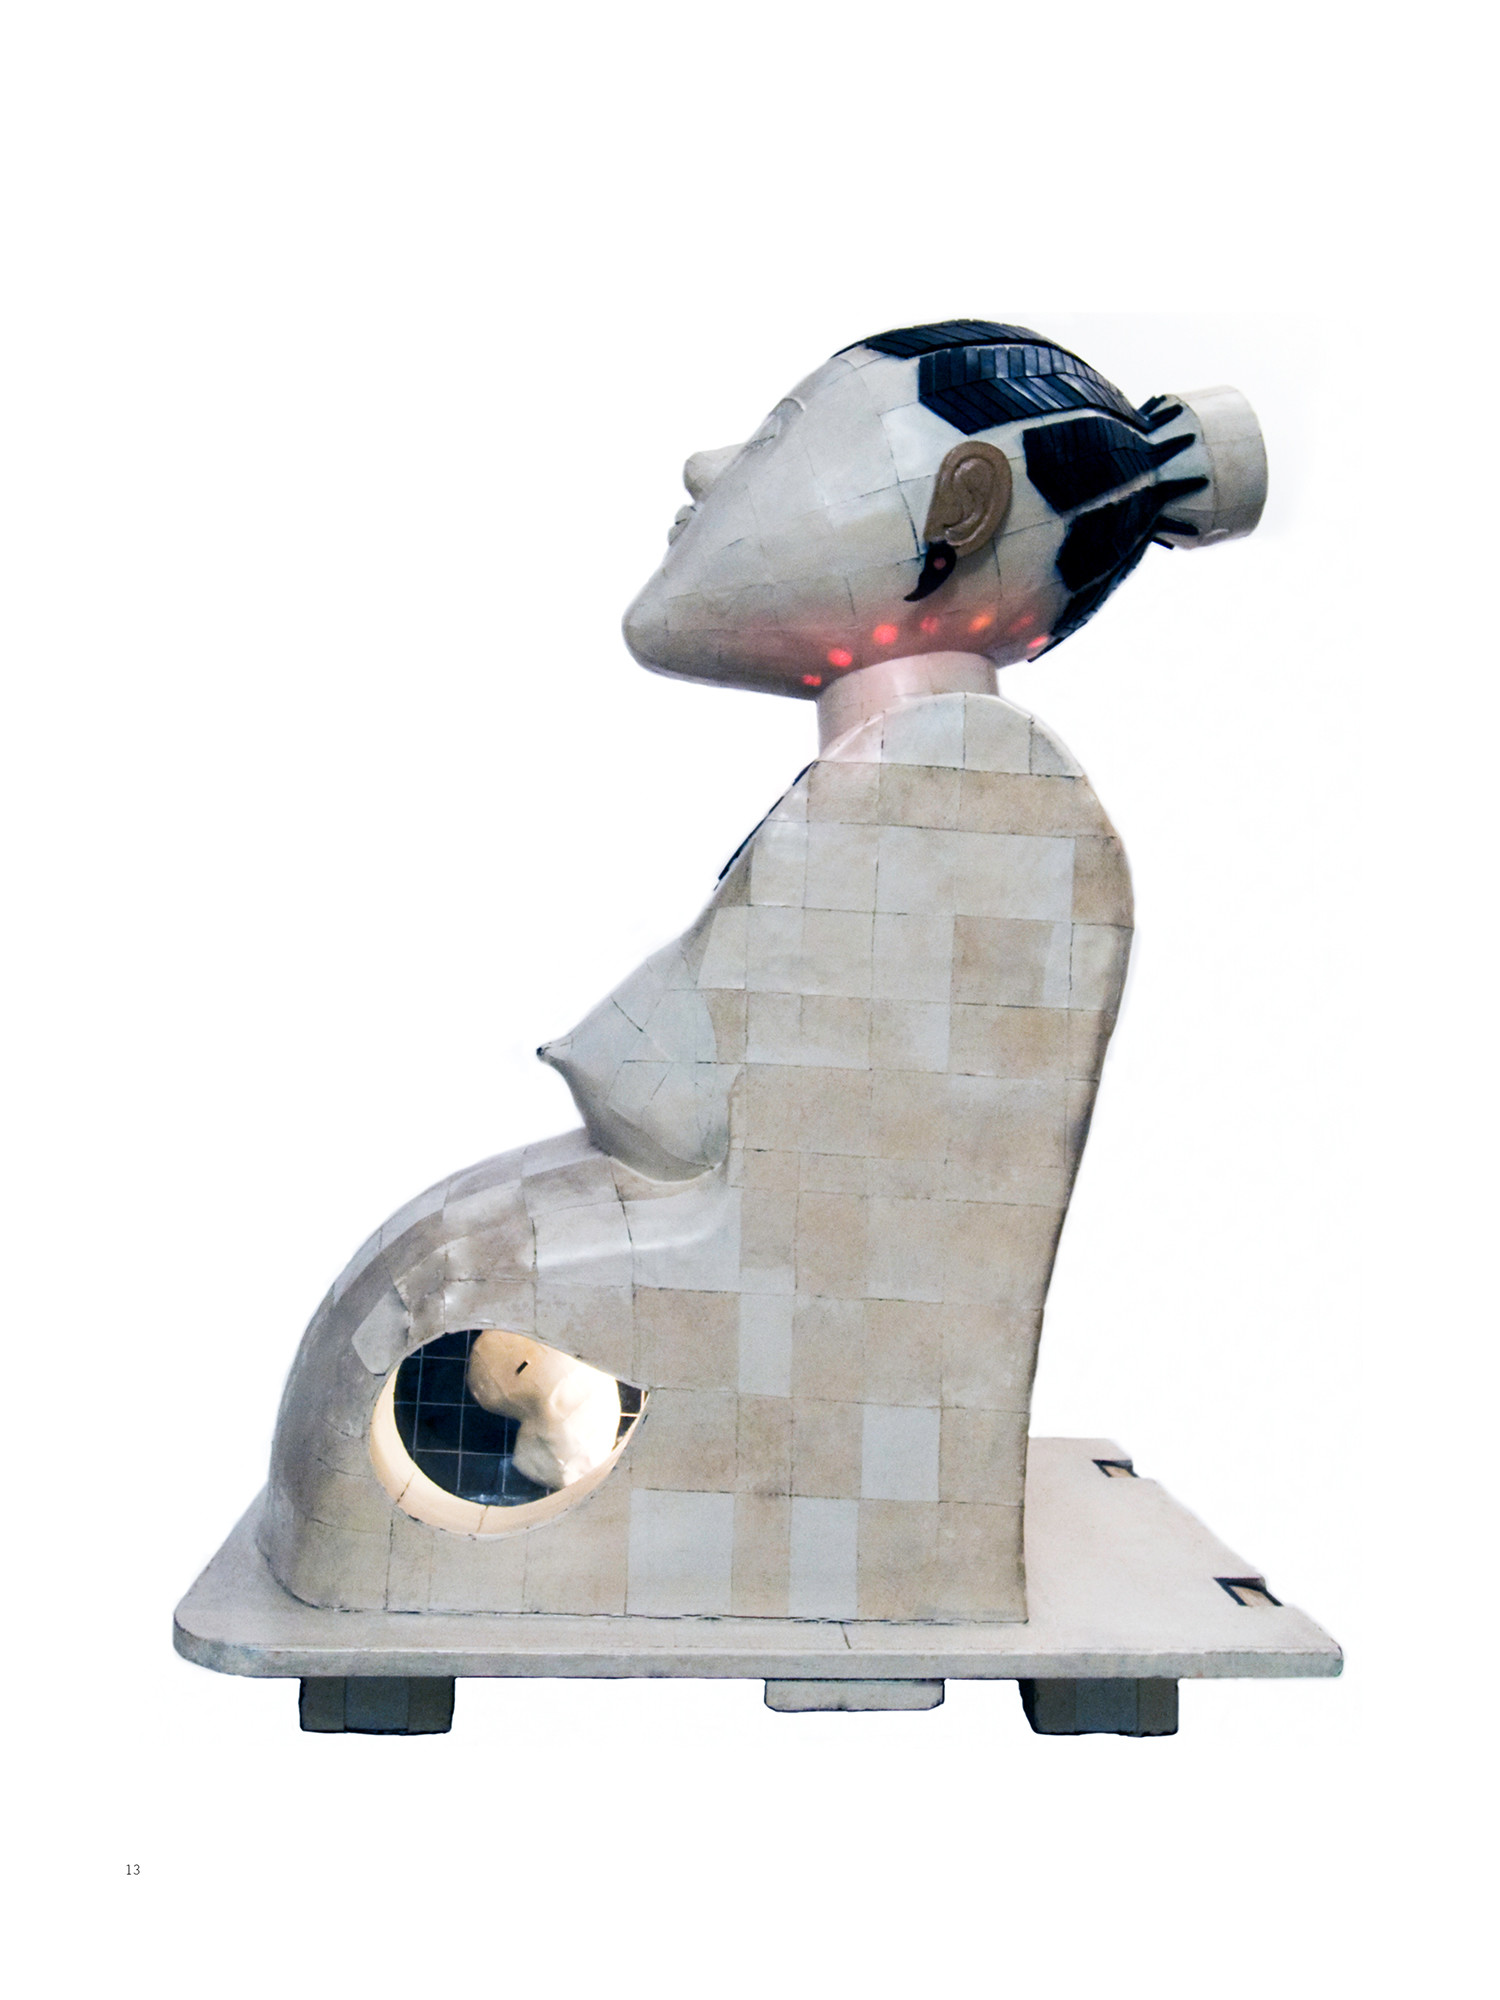 Pume Bylex, 'La Maternité', sculpture mix media, 1992